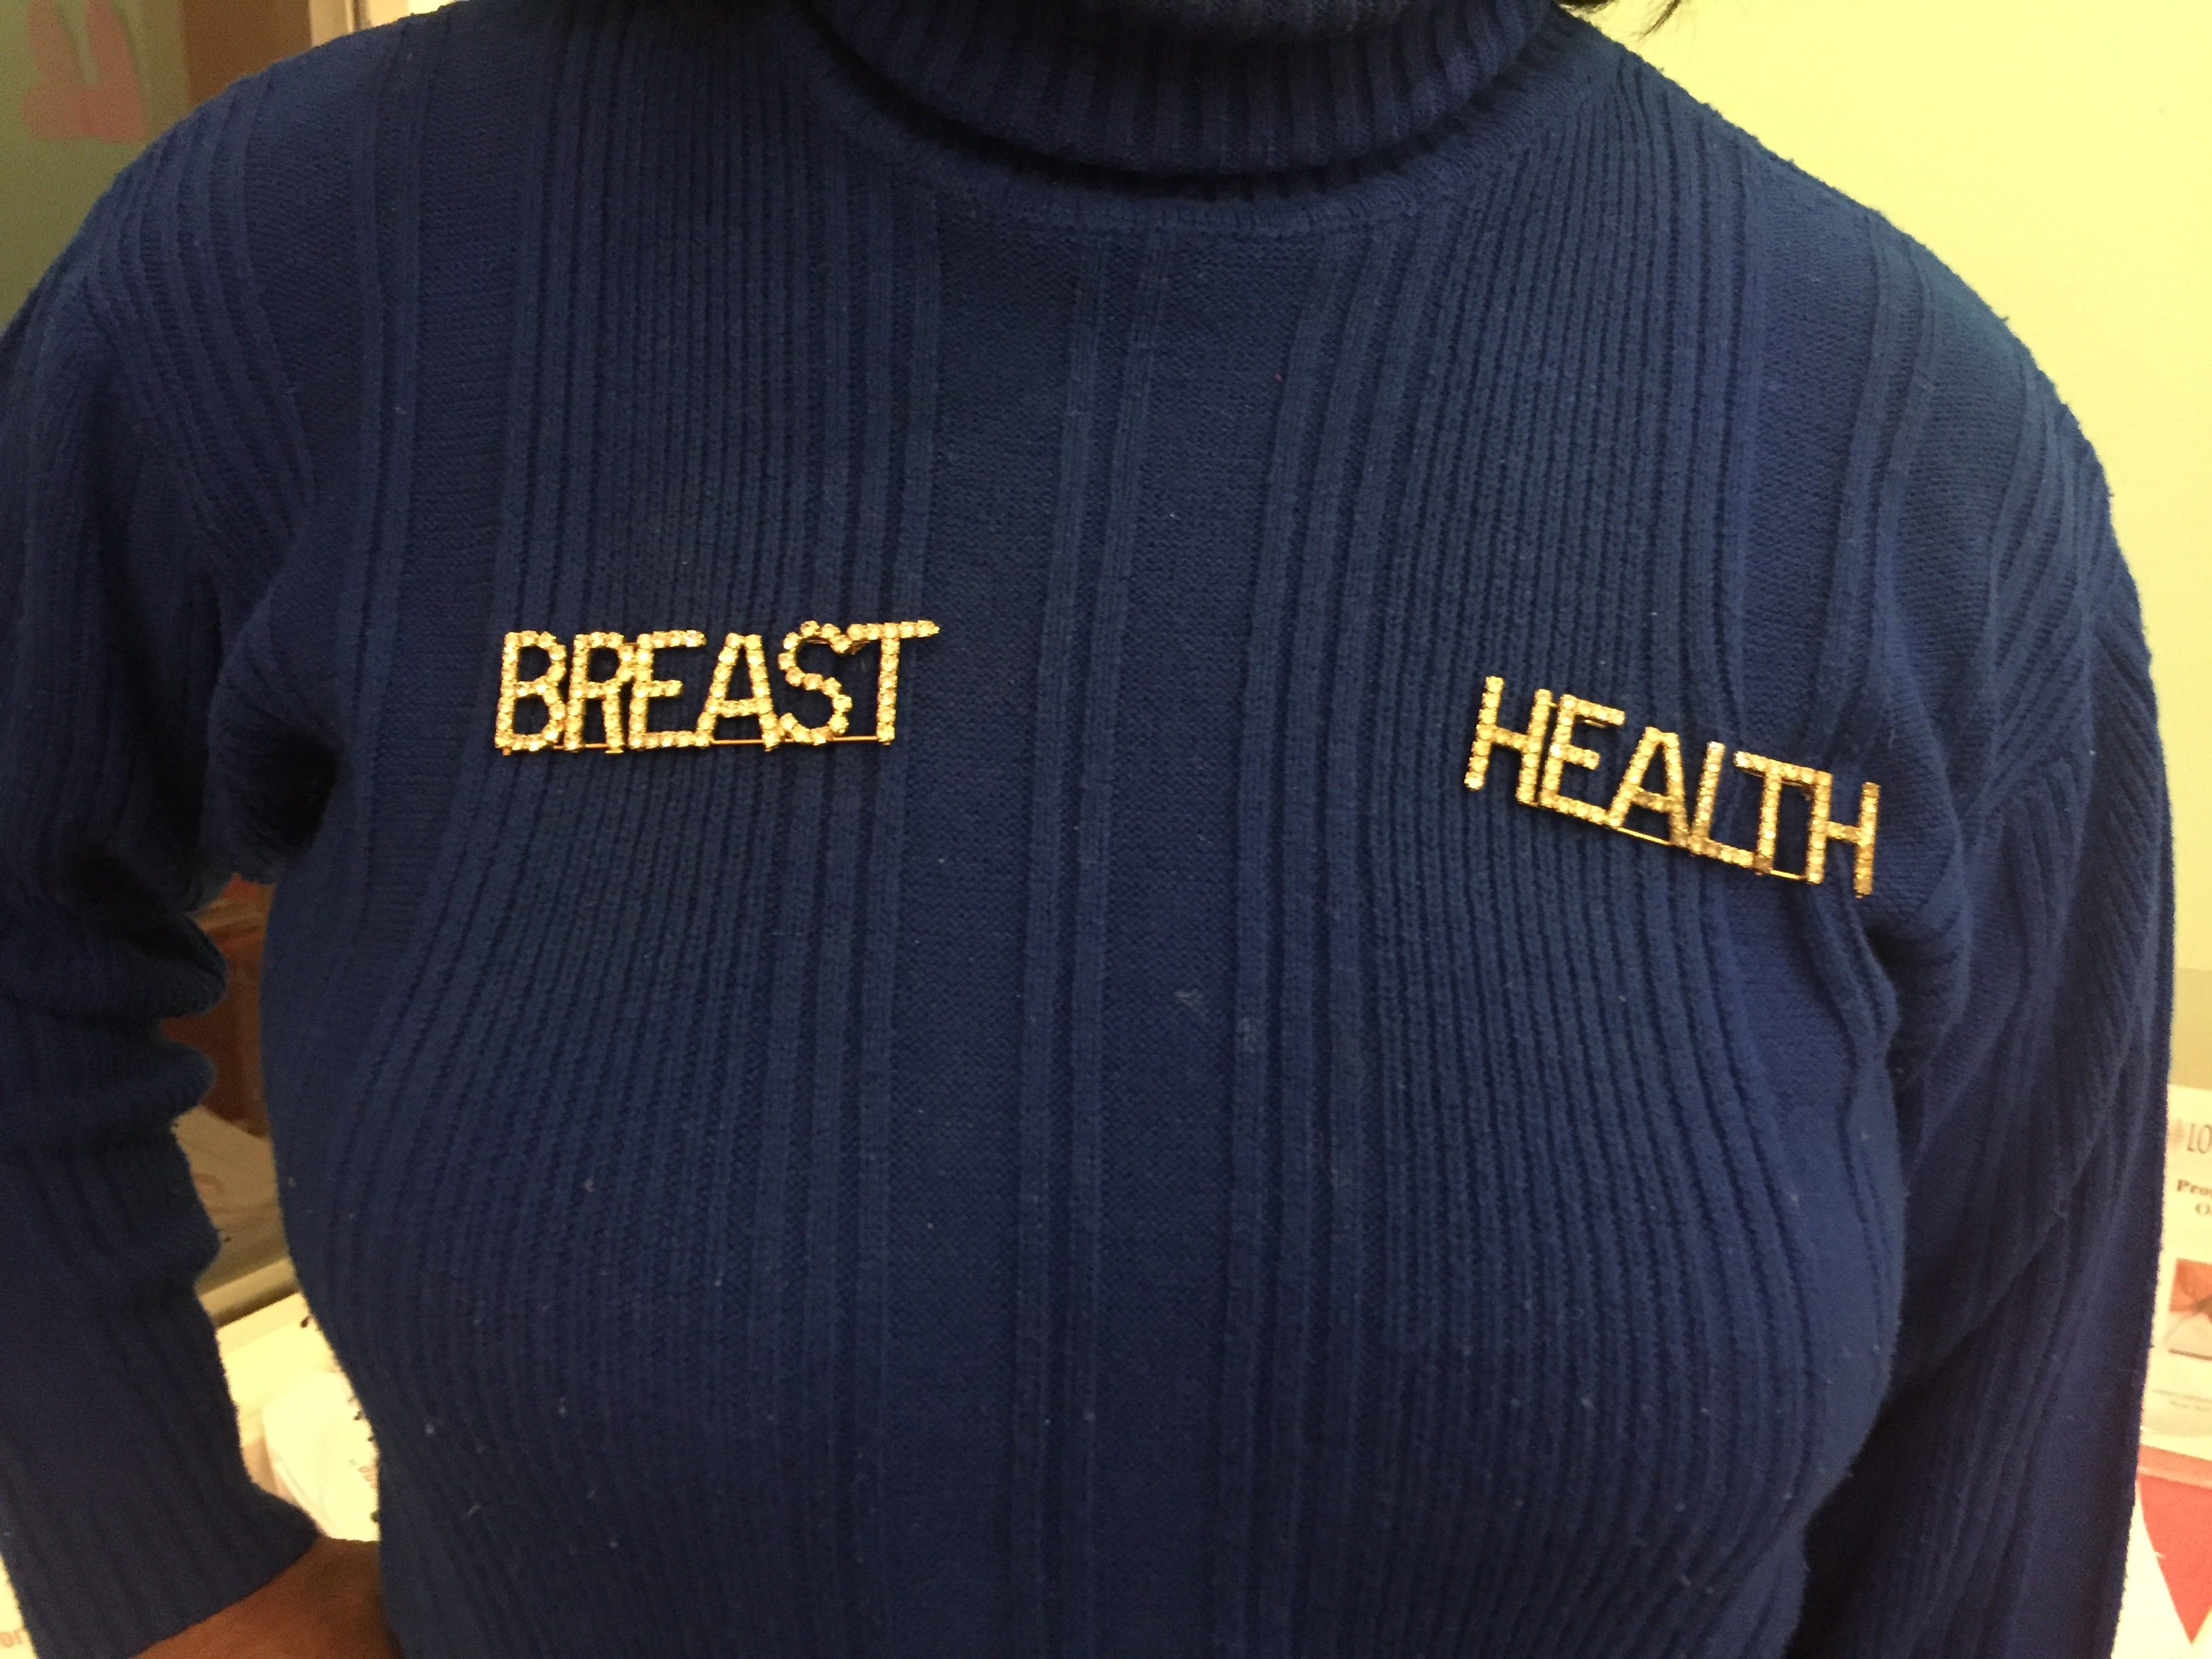 """Dorothea Atkinson's """"breast health"""" pins put her message front and center at the Courier-Post's second annual Galentine's Day event at The Pop Shoppe in Collingswood on Thursday, Feb. 28, 2019."""